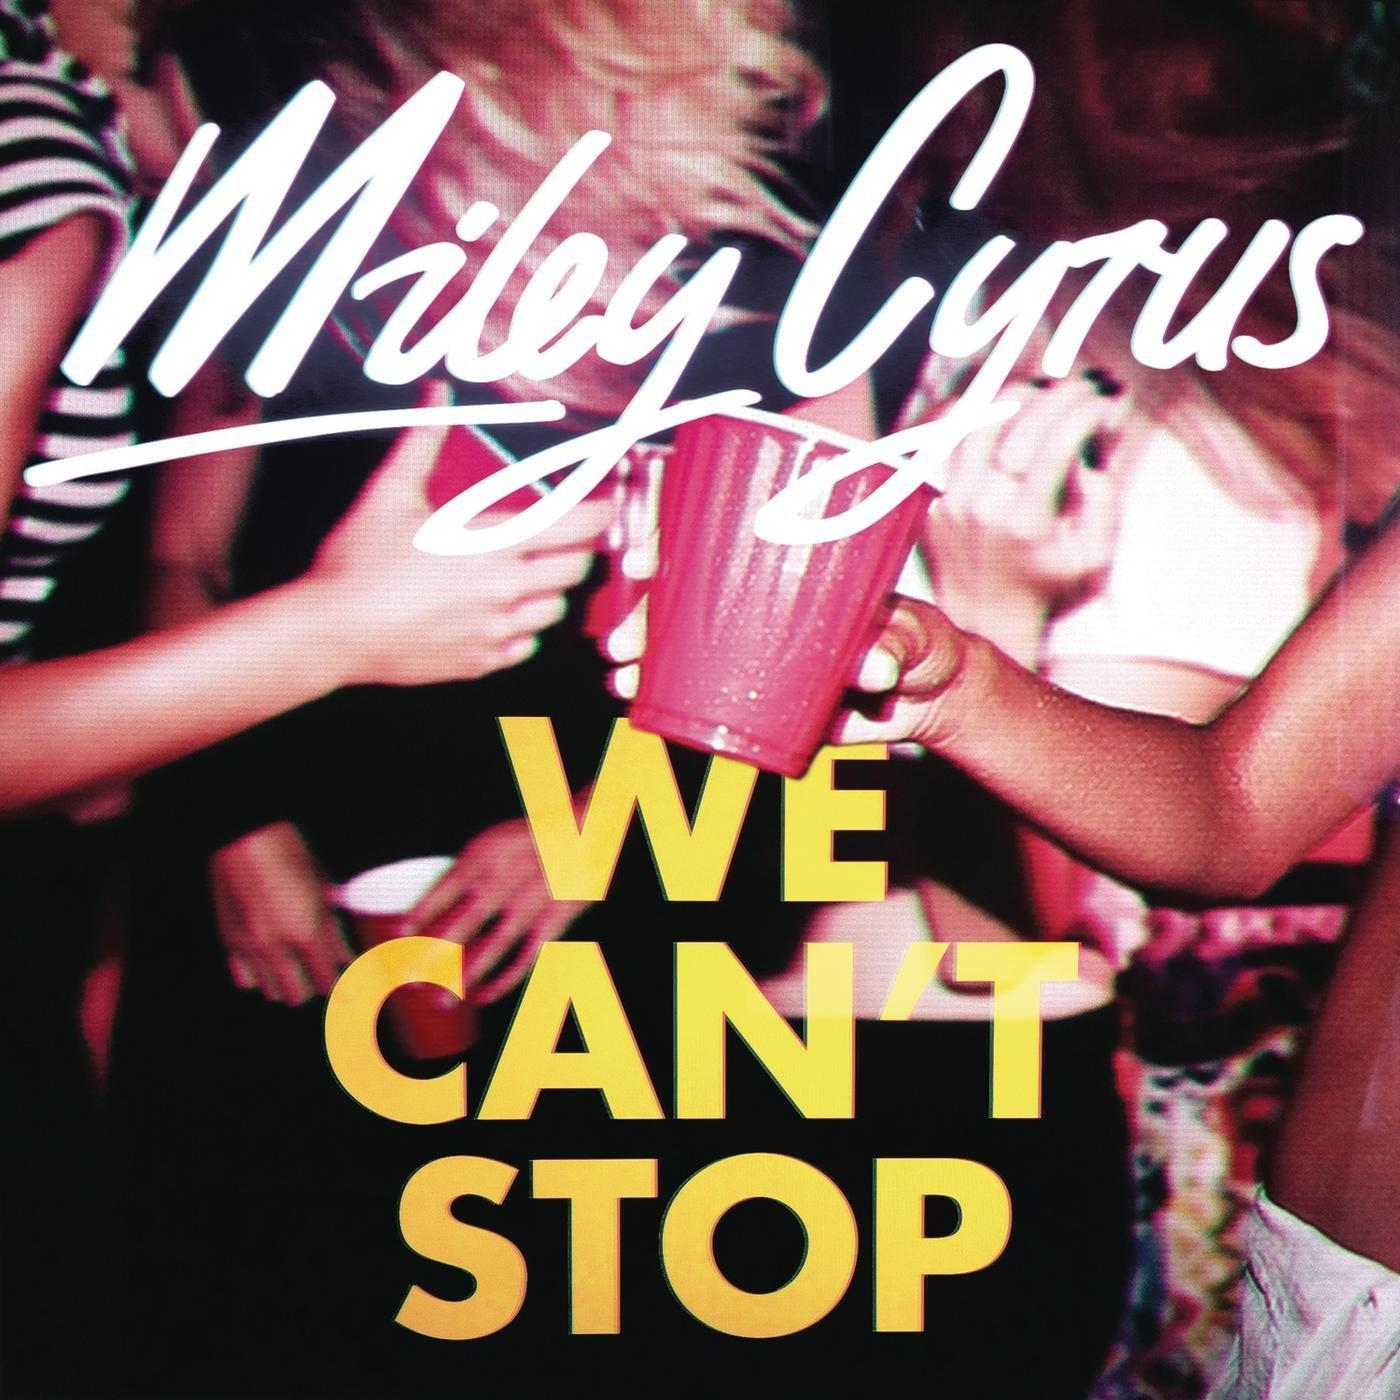 Miley Cyrus [We Can't Stop] Font?